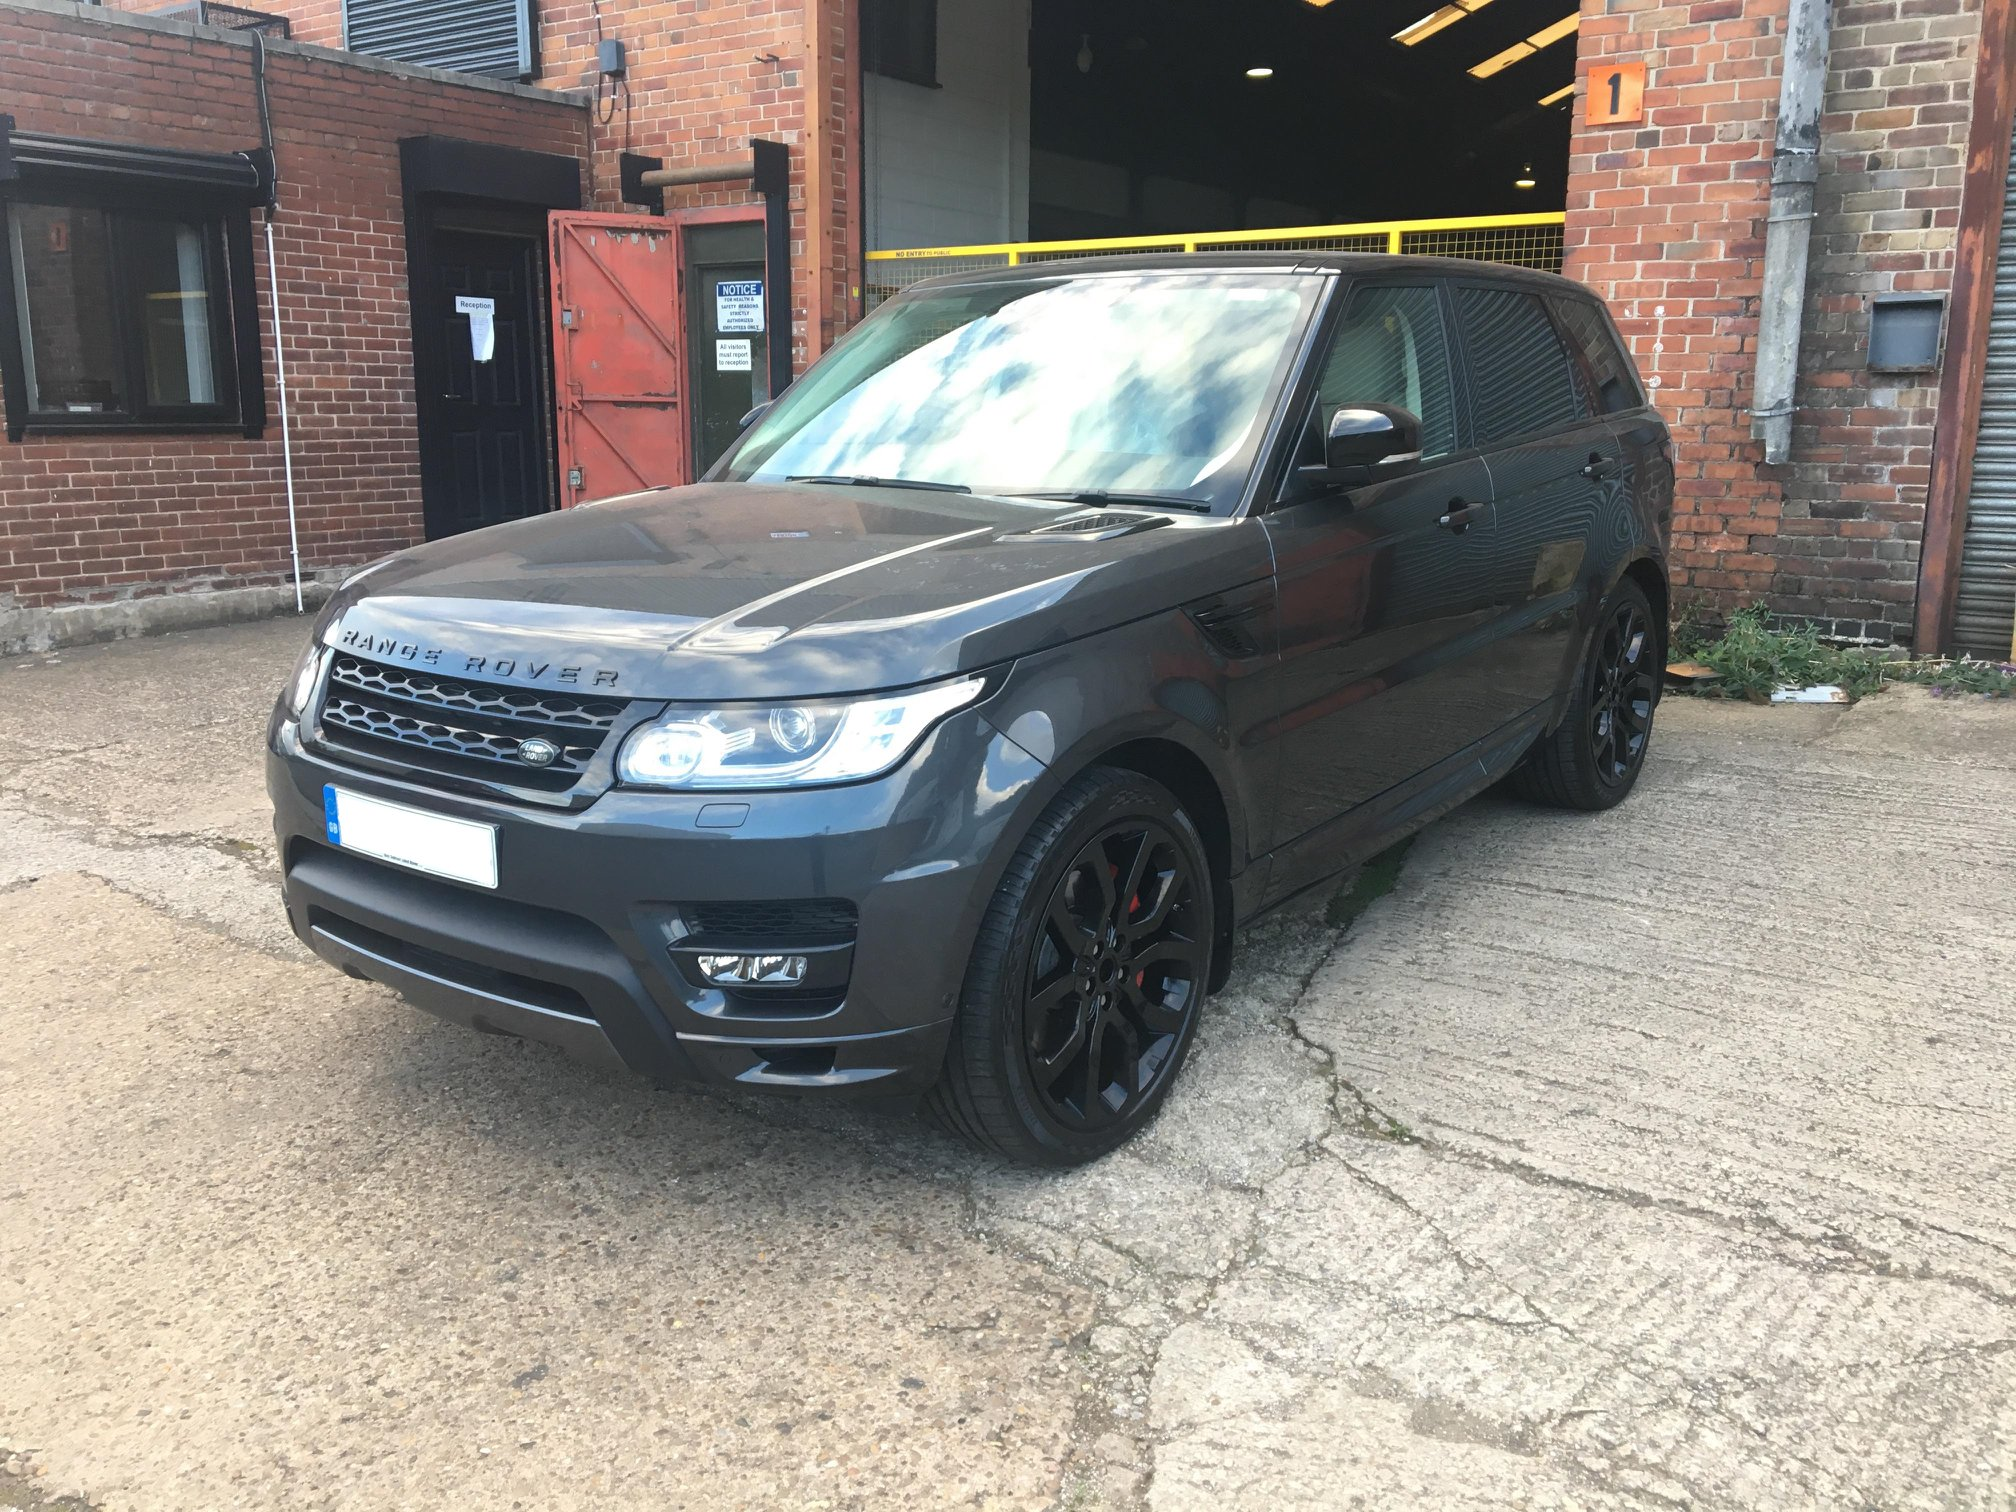 Range Rover Velar with Gloss Black Alloys